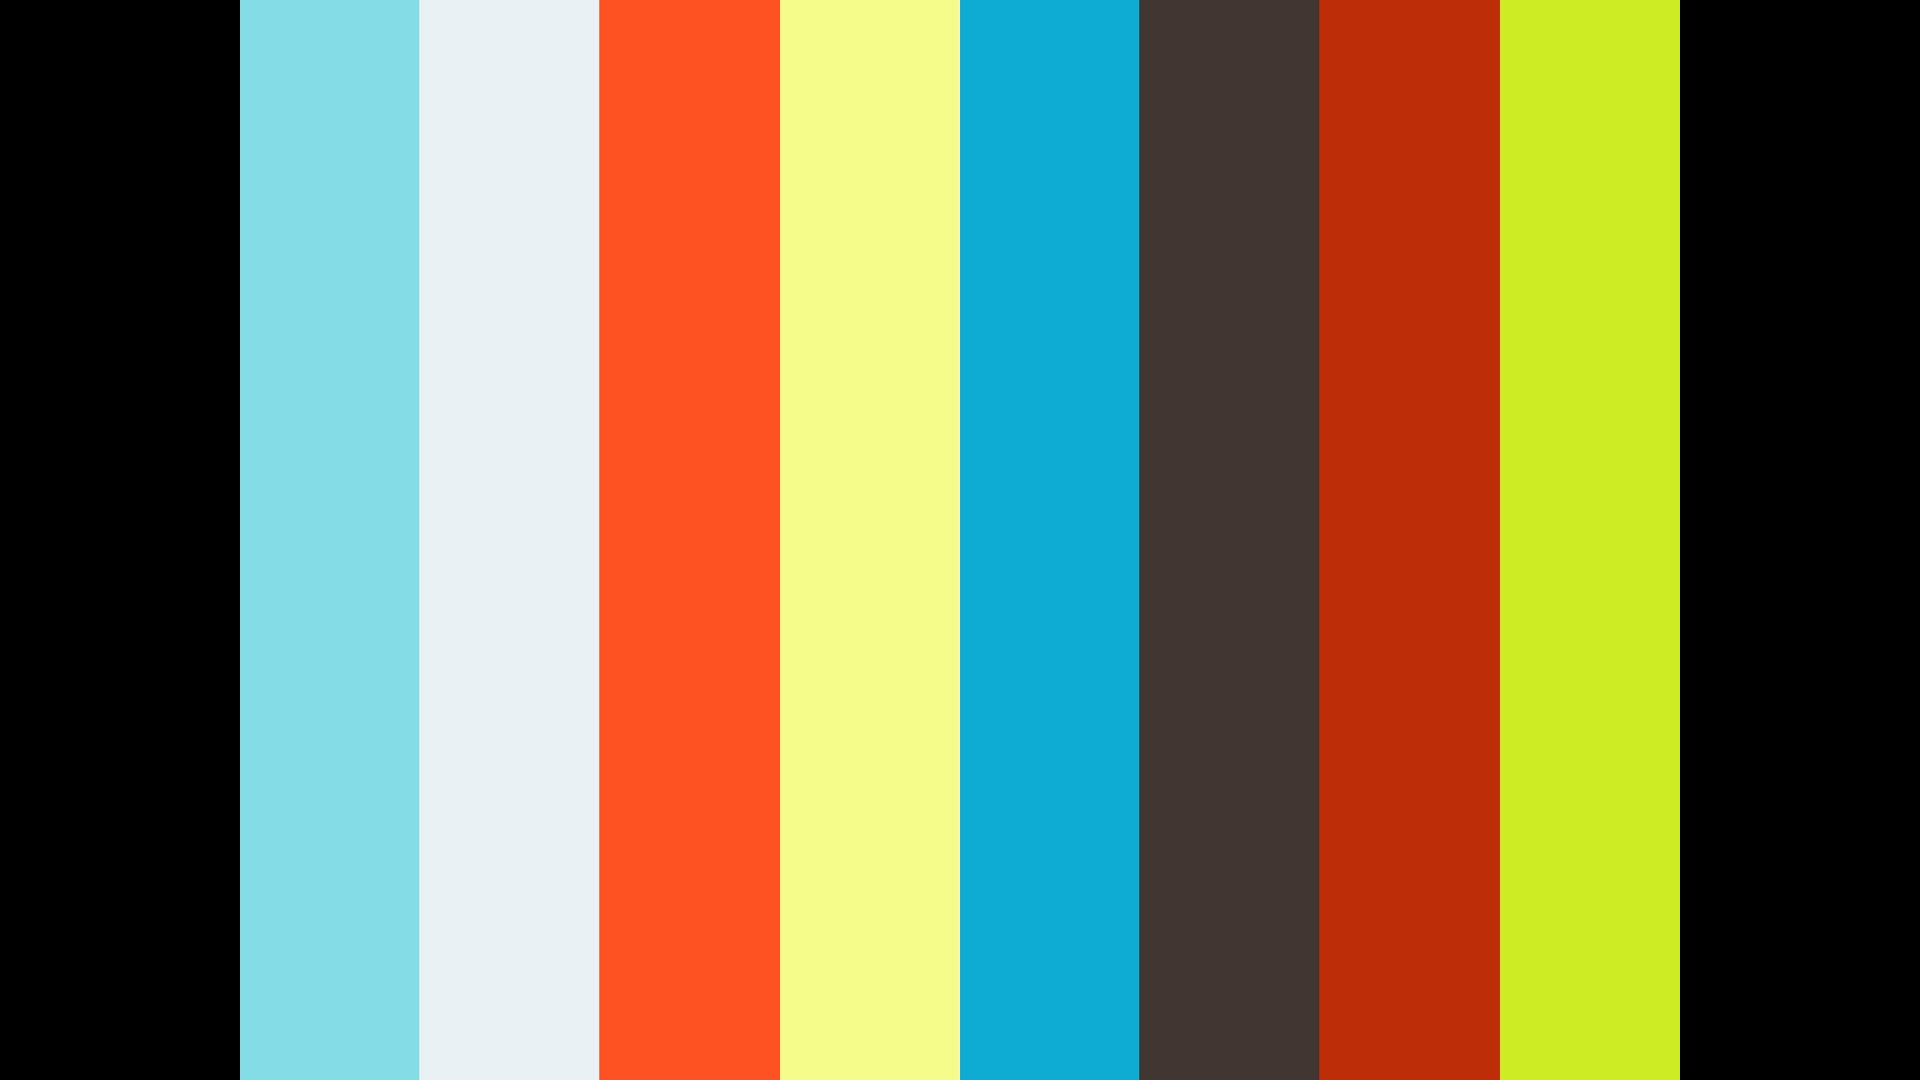 Vince Gill picked up a guitar and what happened next was remarkable...